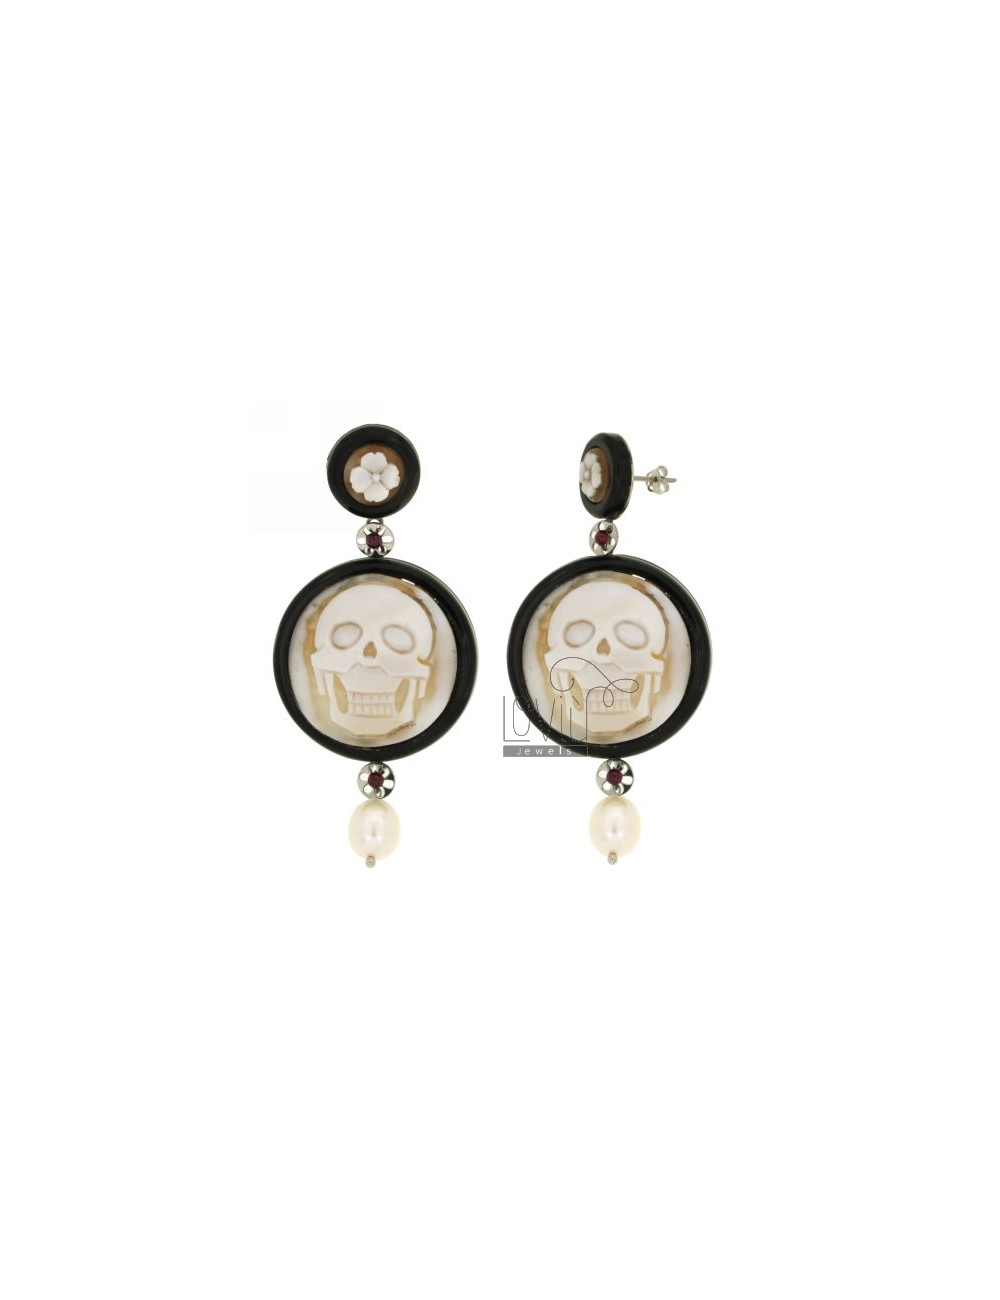 EARRINGS ROUND RESIN SKULL CAMEO PEARL AND STEEL